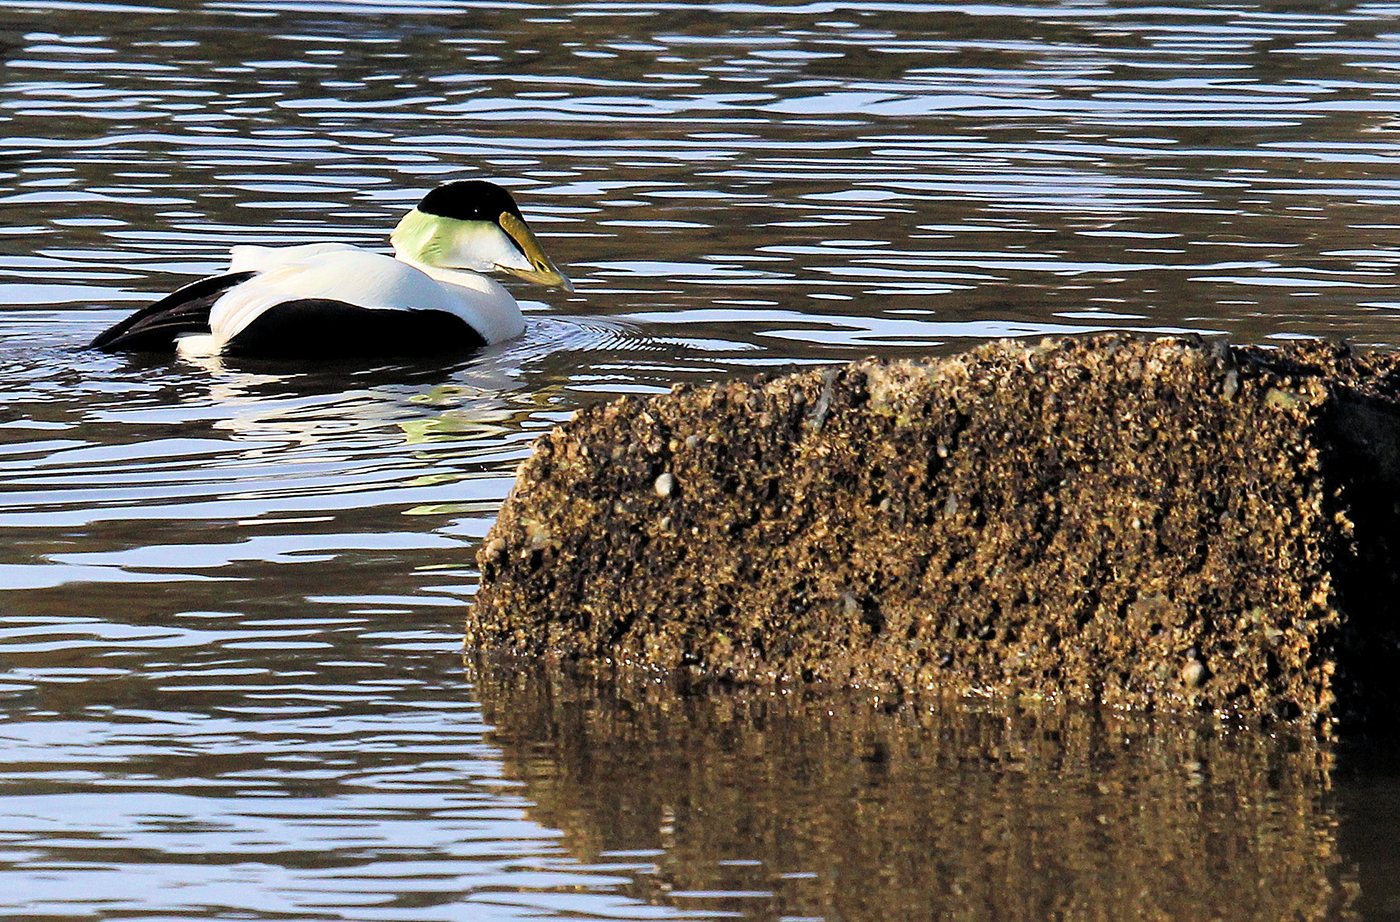 Common Eider by David Small